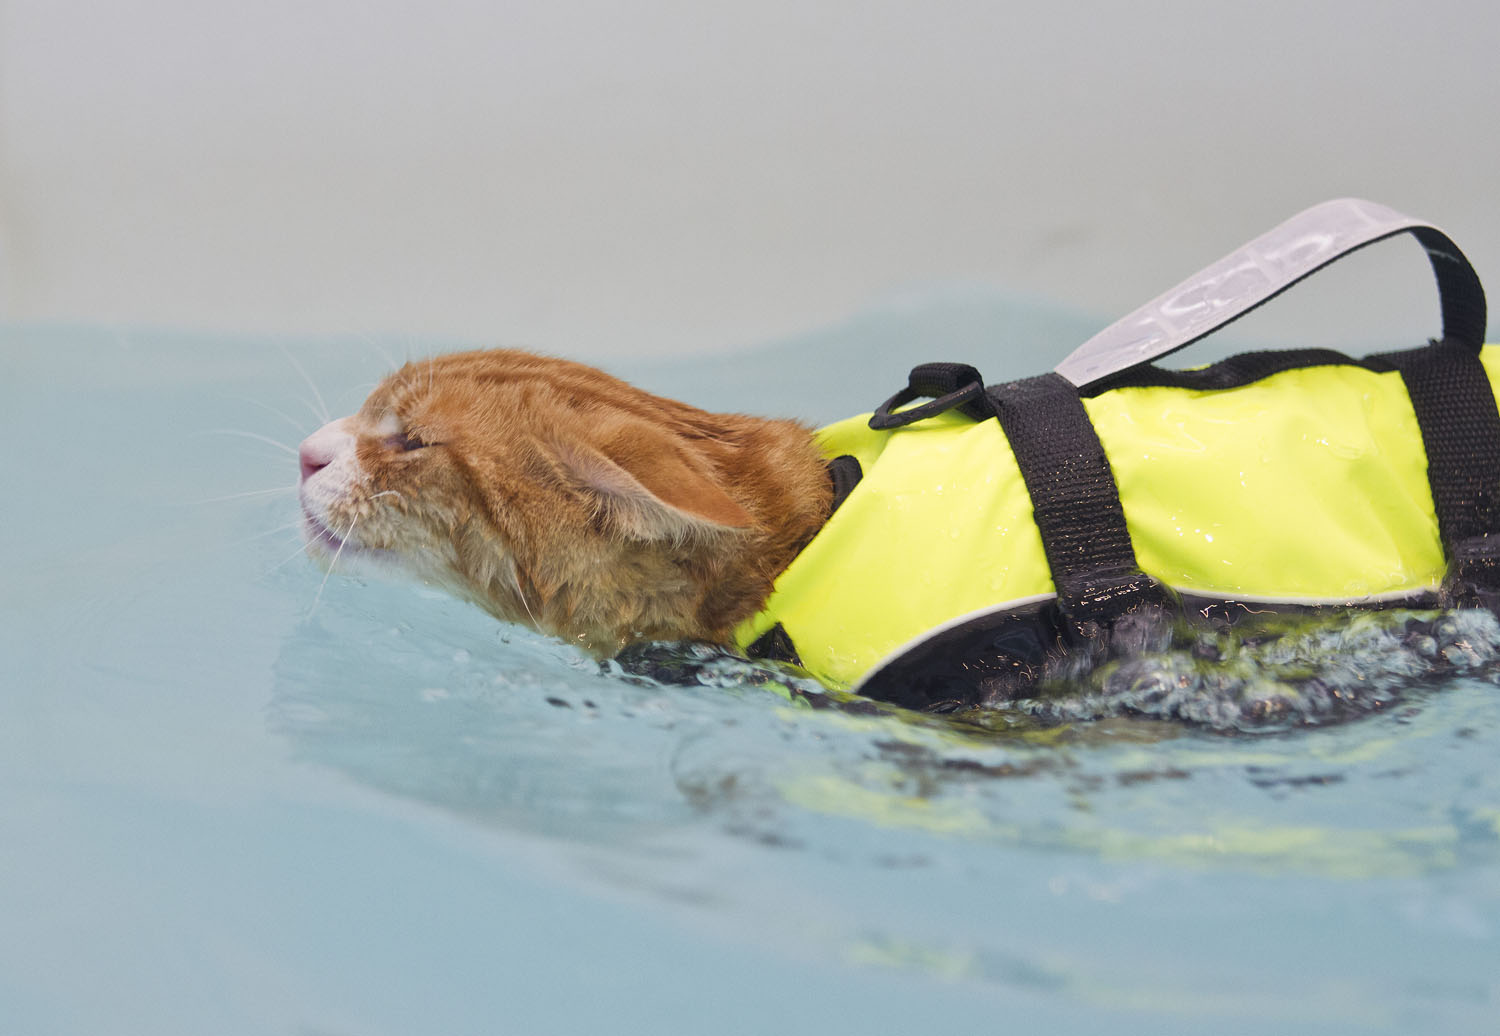 http://www.express.co.uk/news/uk/533661/Soggy-Moggy-Meet-the-cat-who-loves-swimming